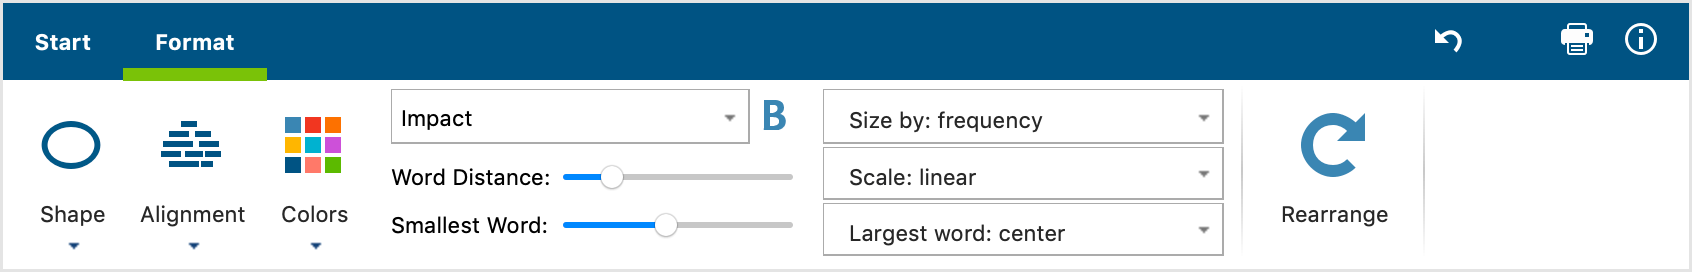 Functions in the Format tab